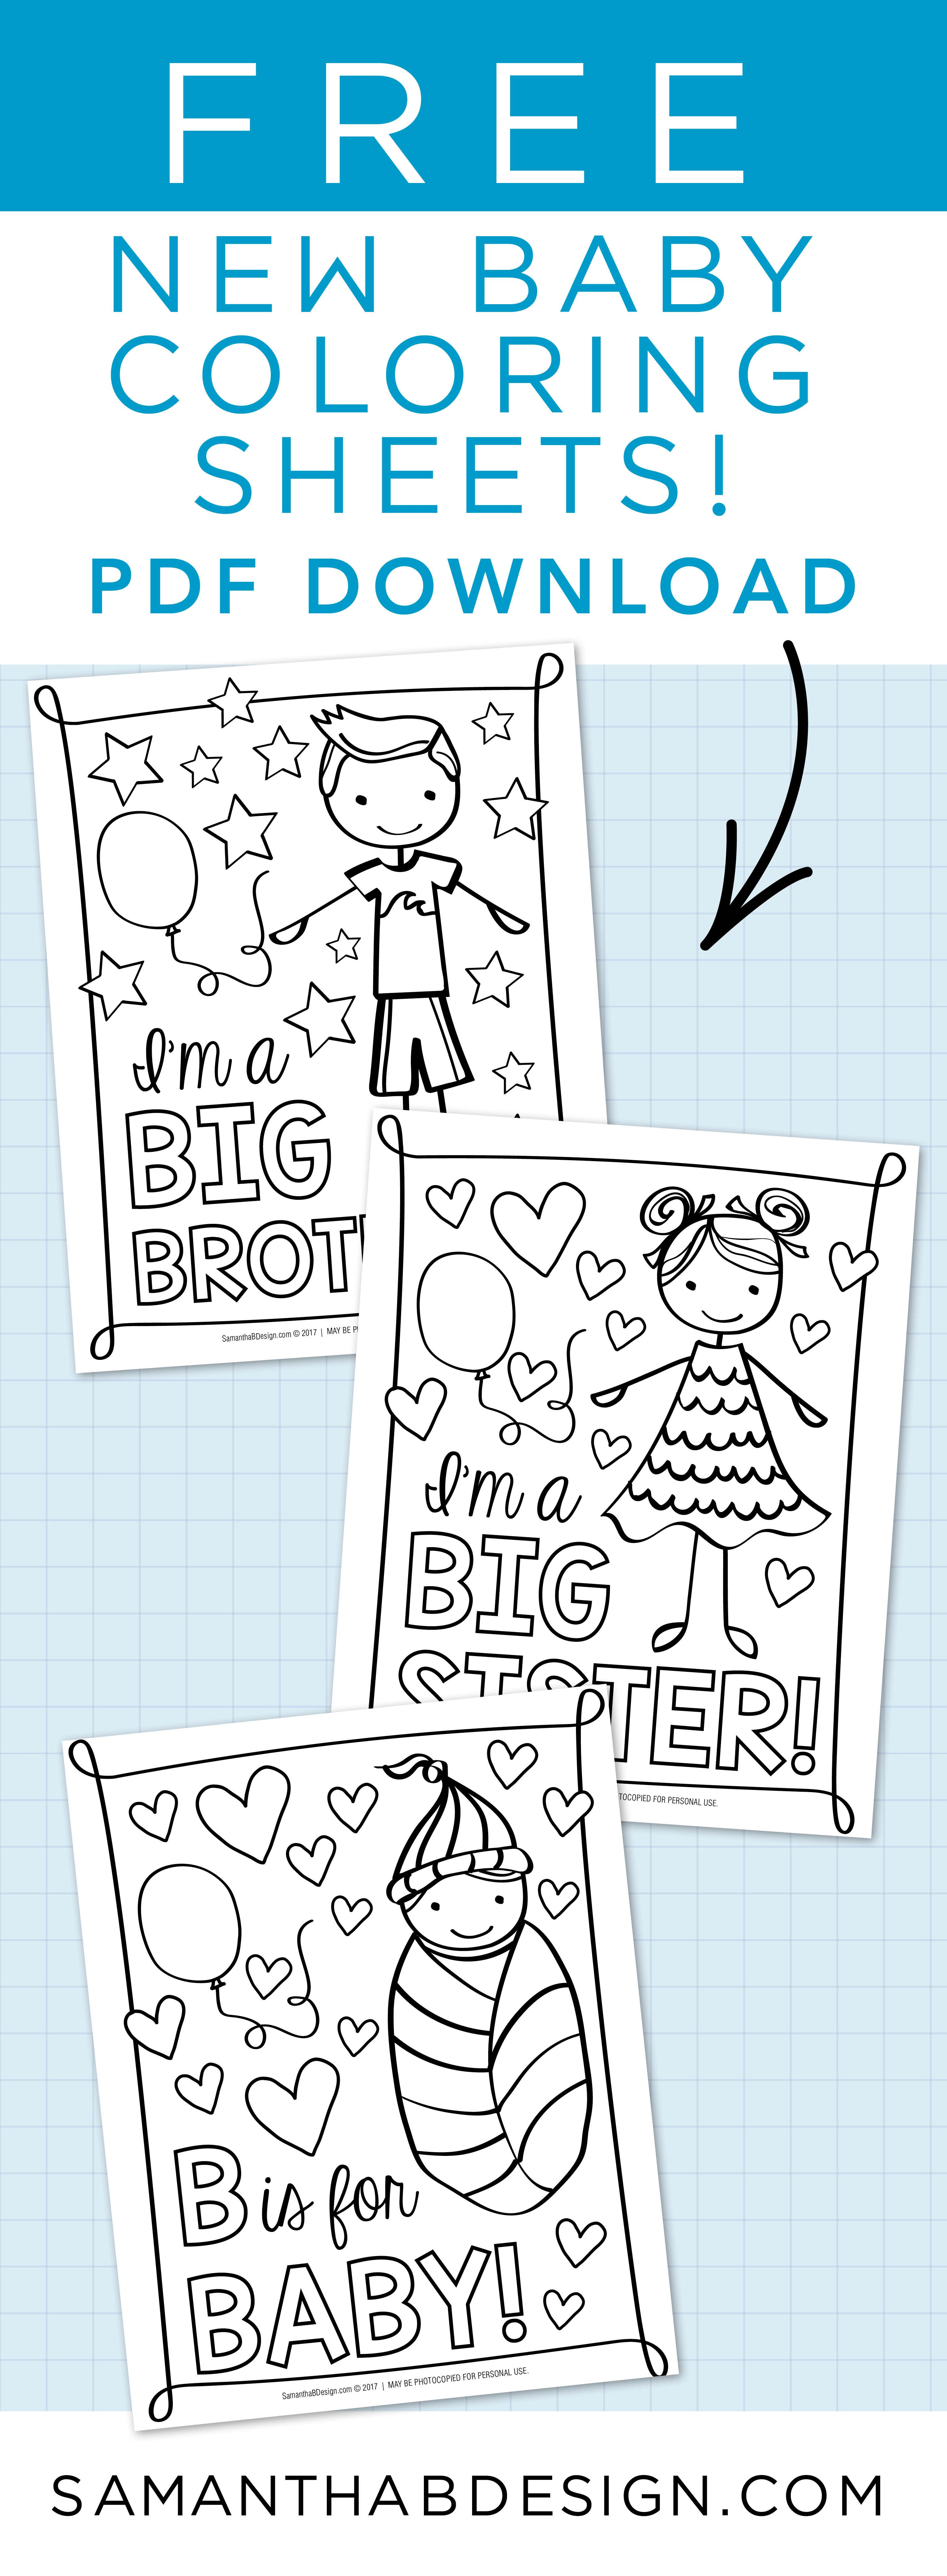 Free PDF Coloring sheets for big sisterbig brother Adorable